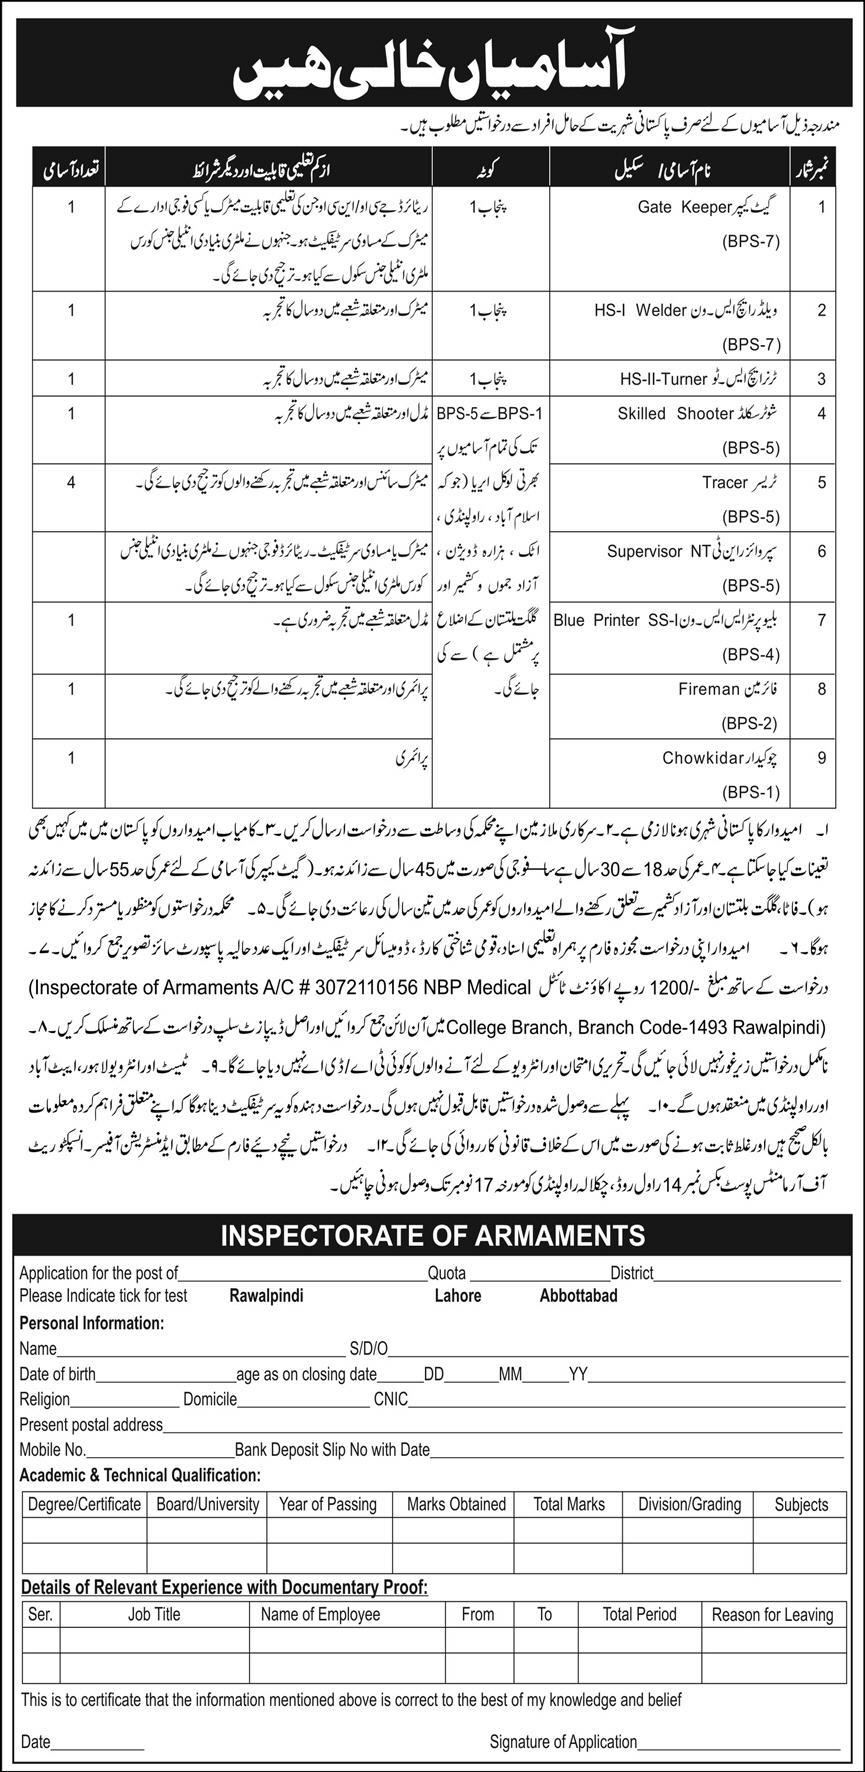 Inspectorate of Armaments Management November 2020 Jobs in Pakistan 2020 - Download Job Application Form